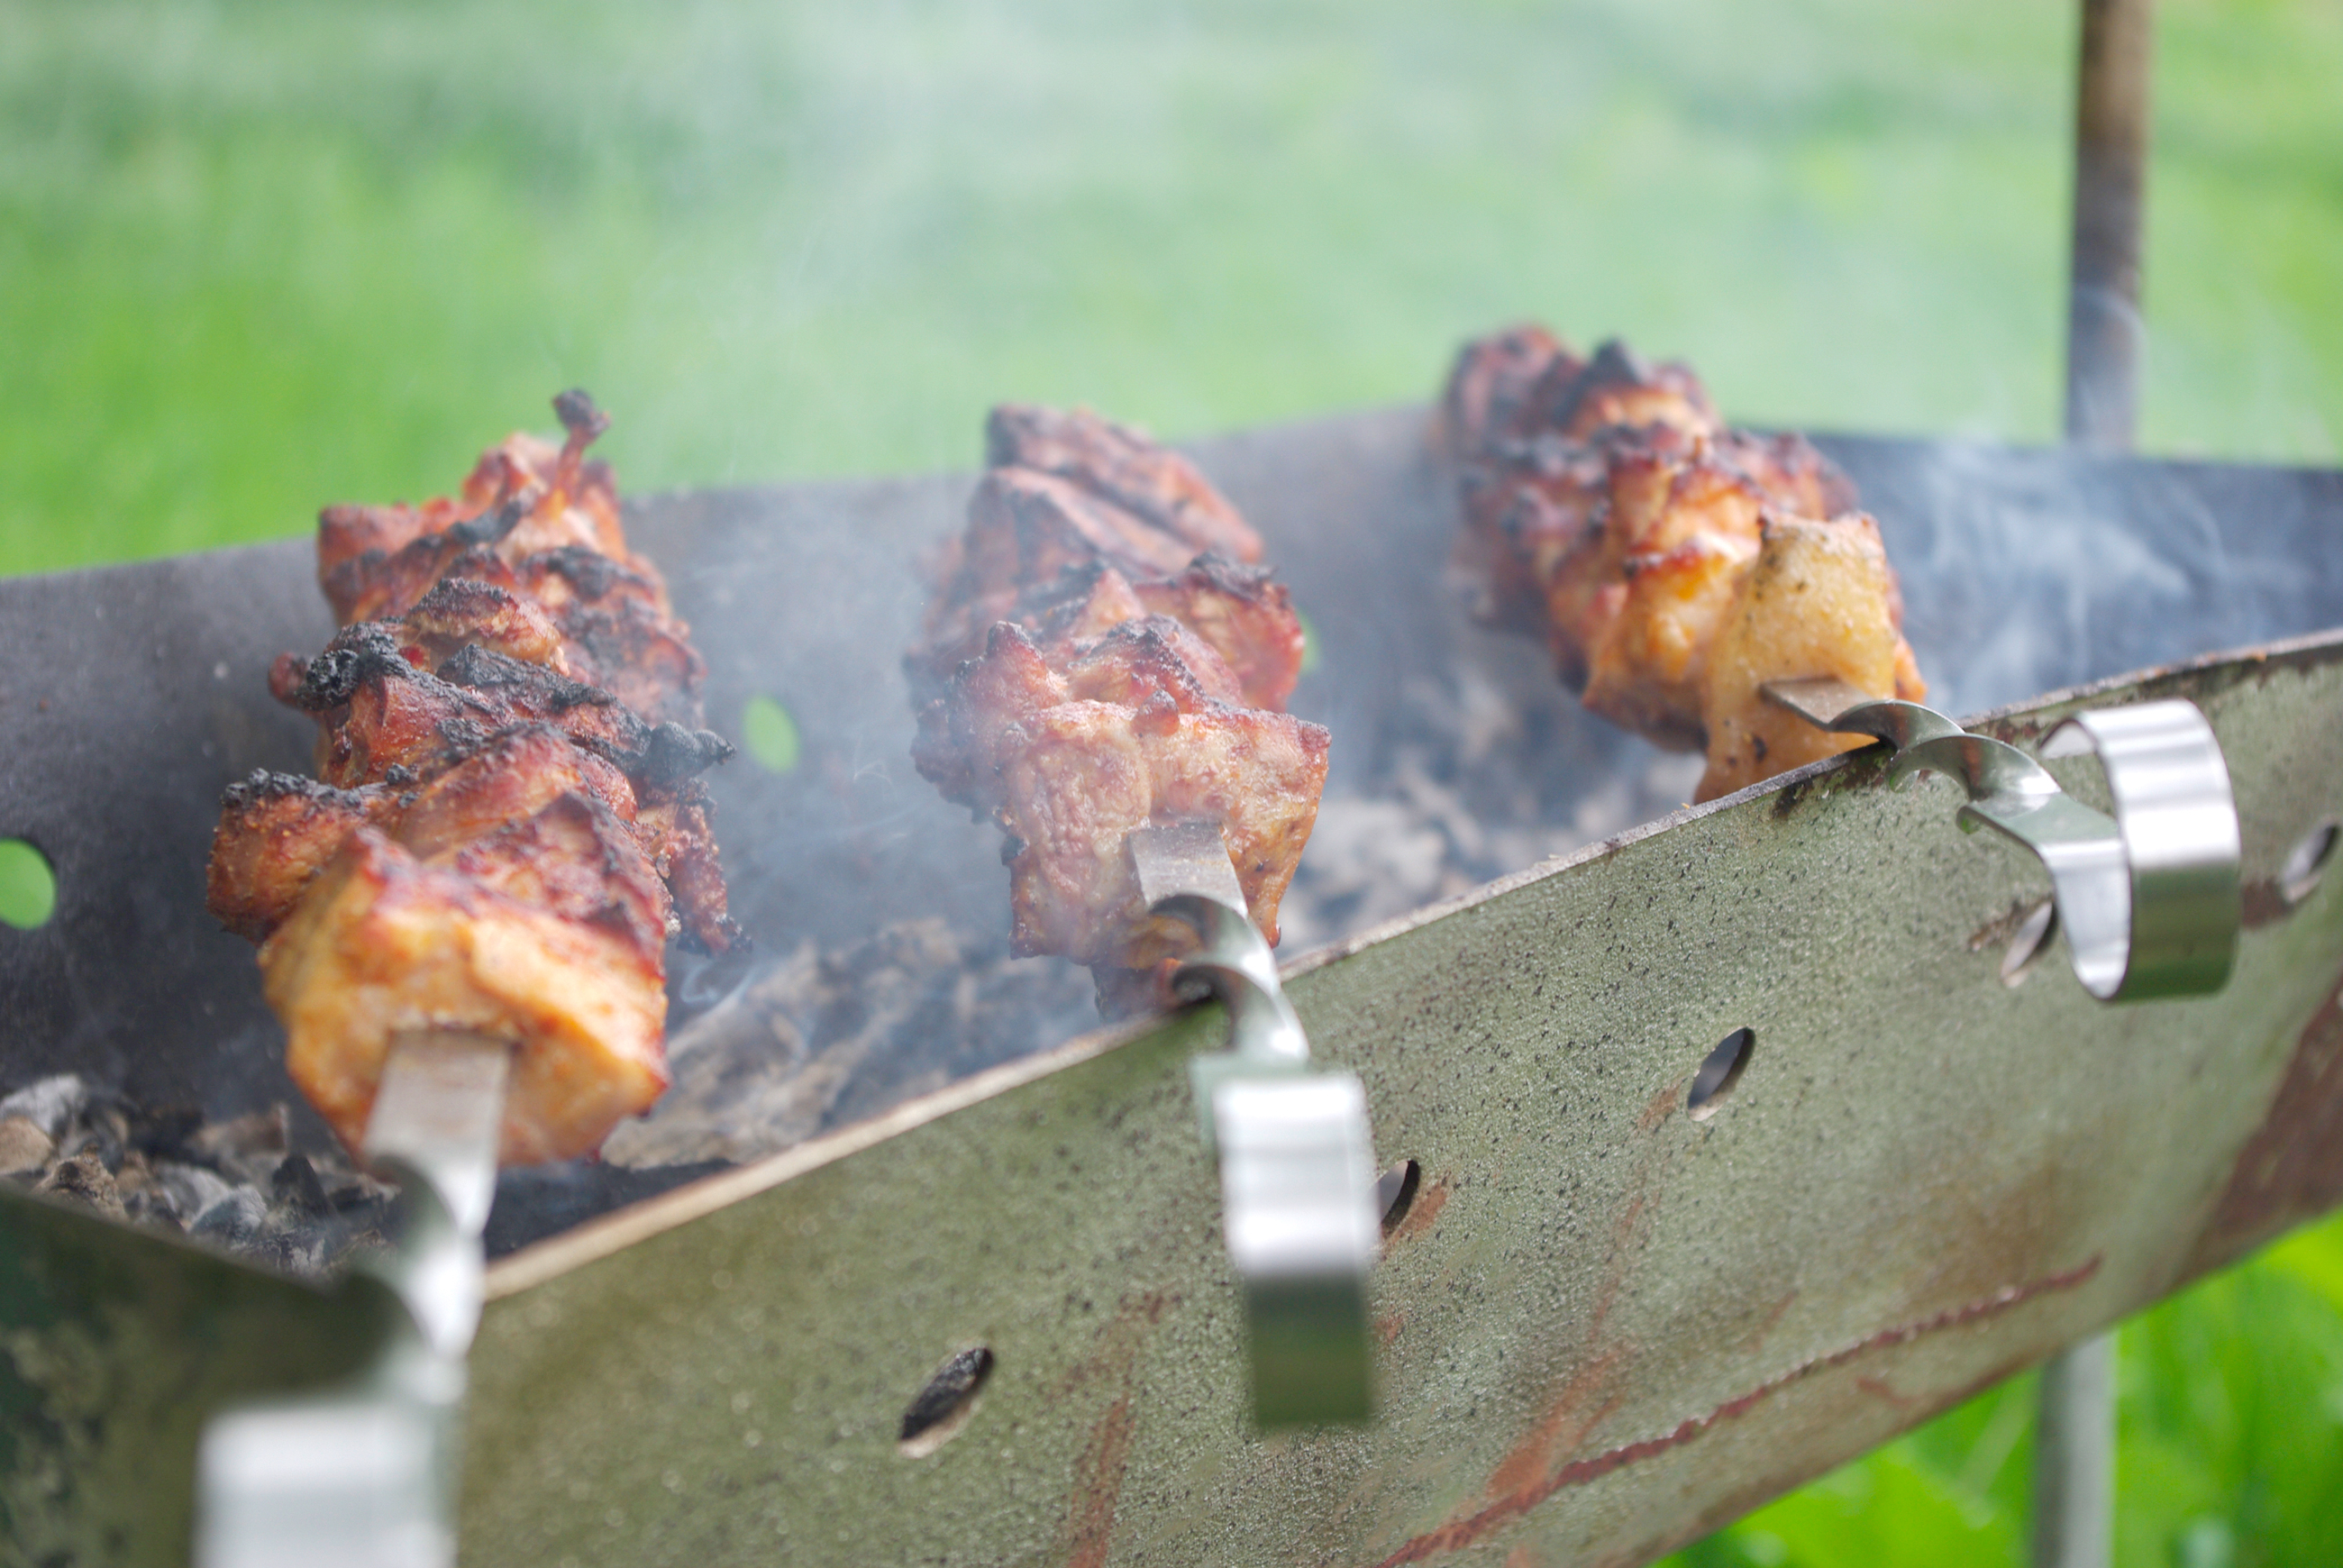 BBQ Meat Grill